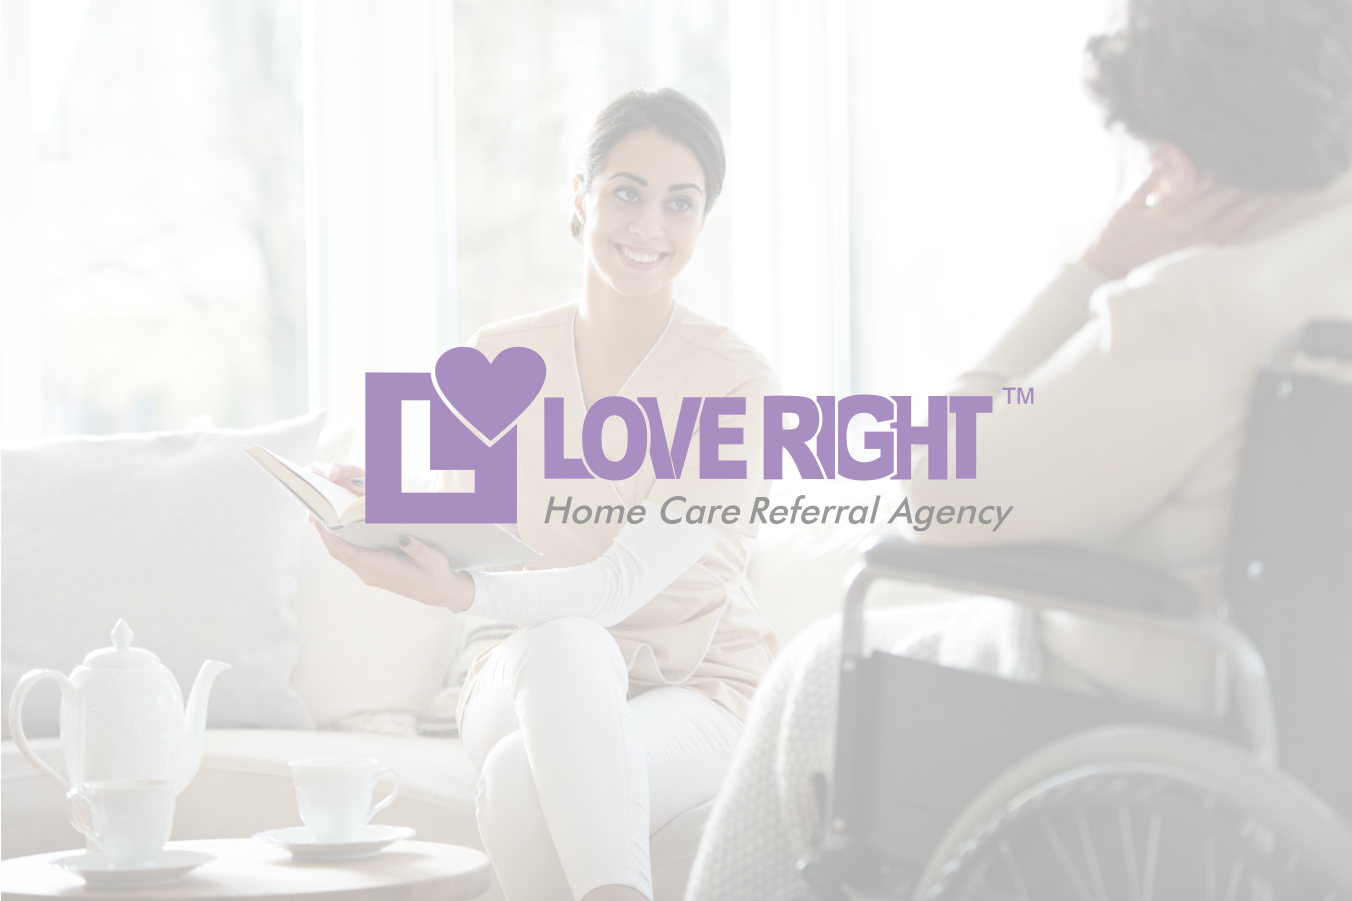 Caregiver Services | Love Right Home Care Referral Agency |